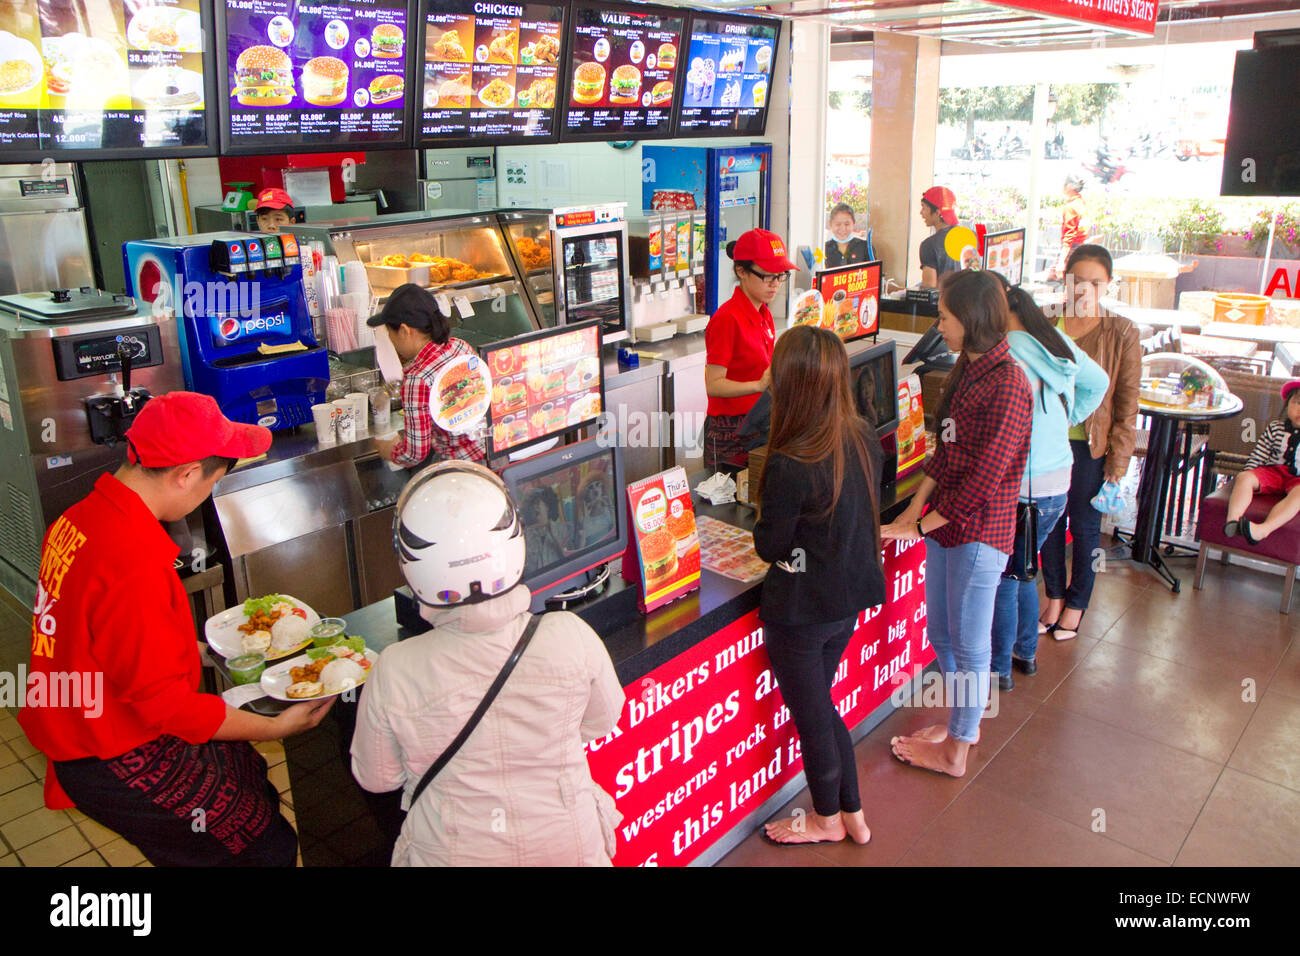 Interior of a Lotteria fast food restaurant in Da Lat, Vietnam. - Stock Image